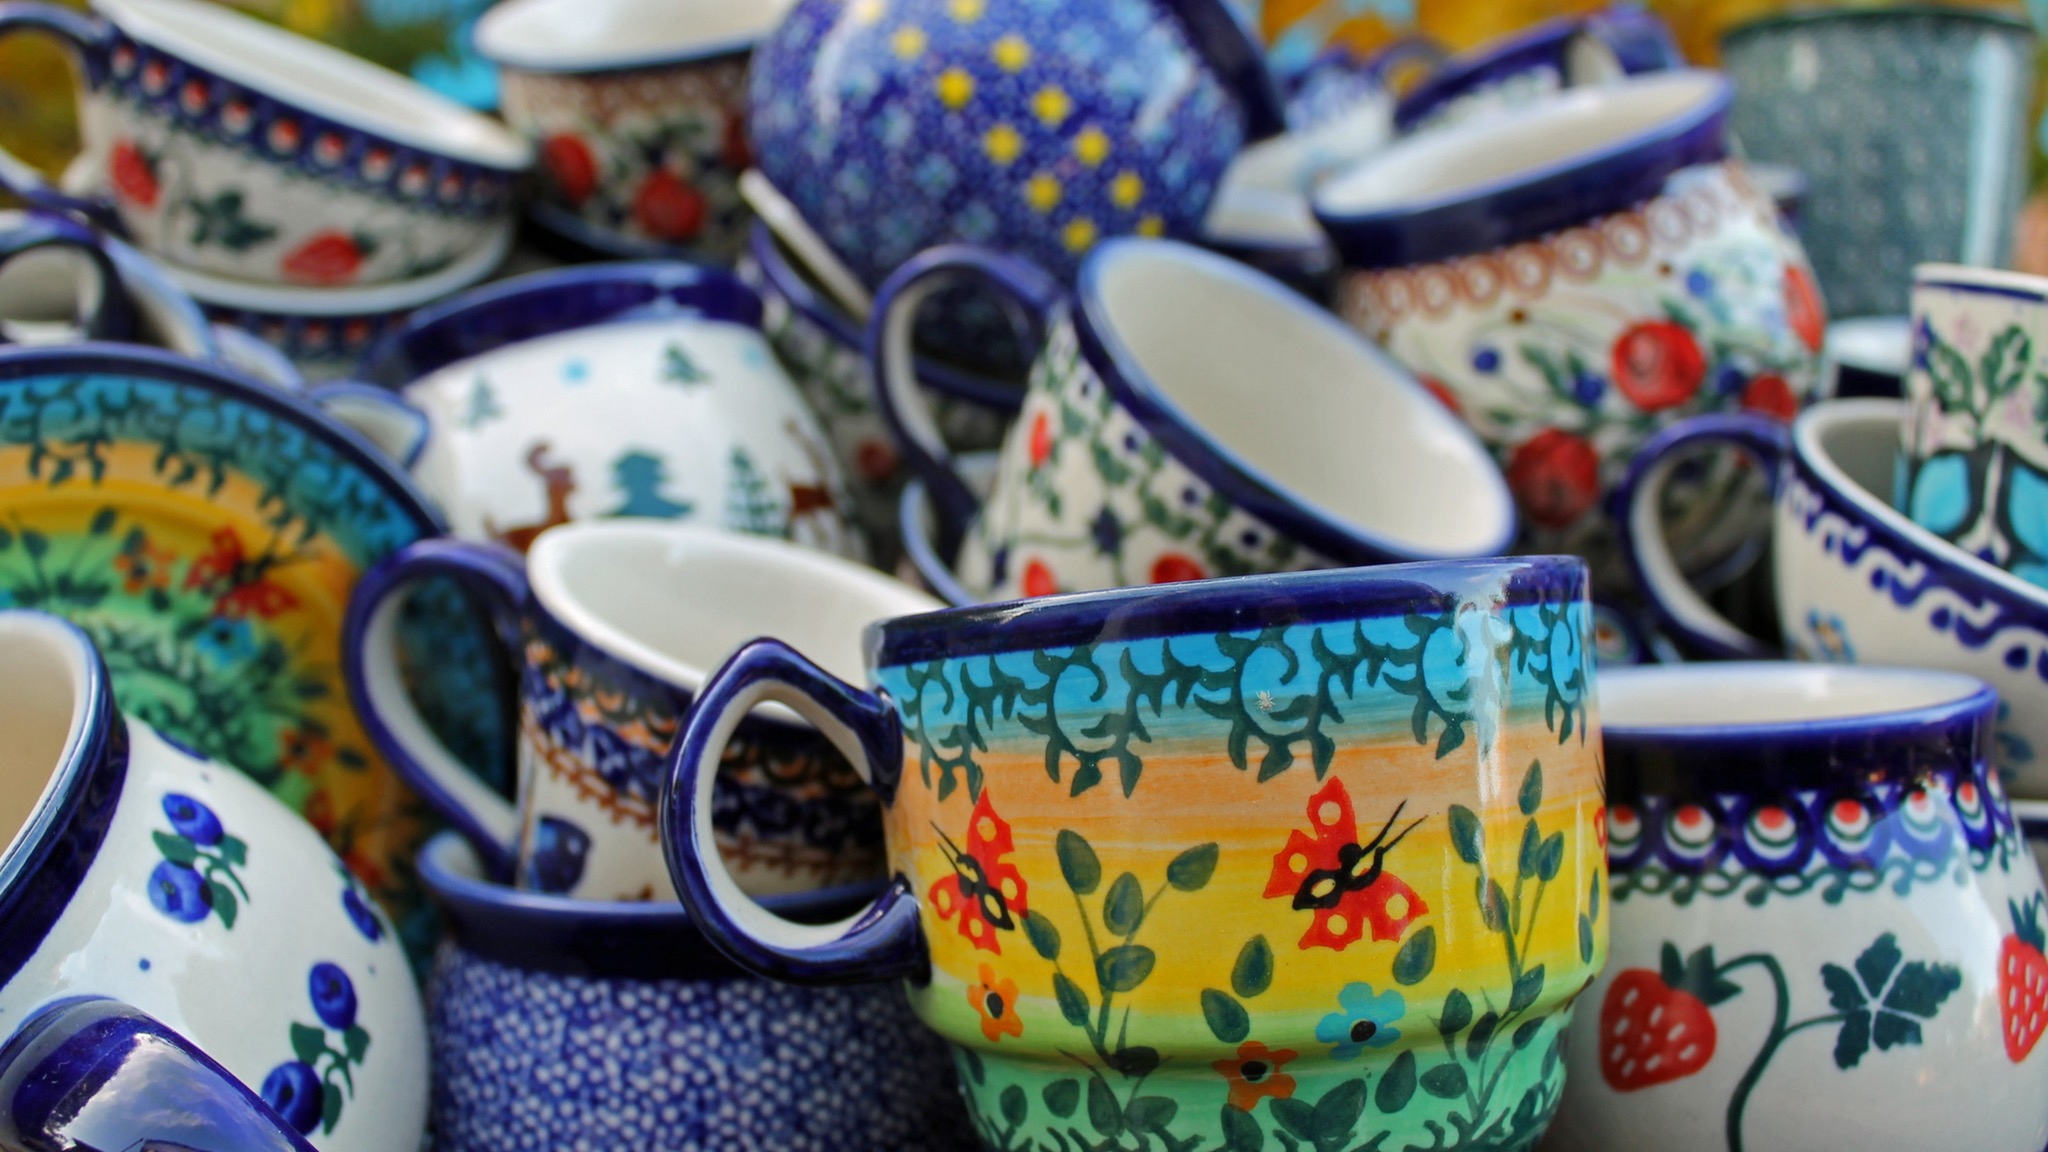 Cups and Mugs